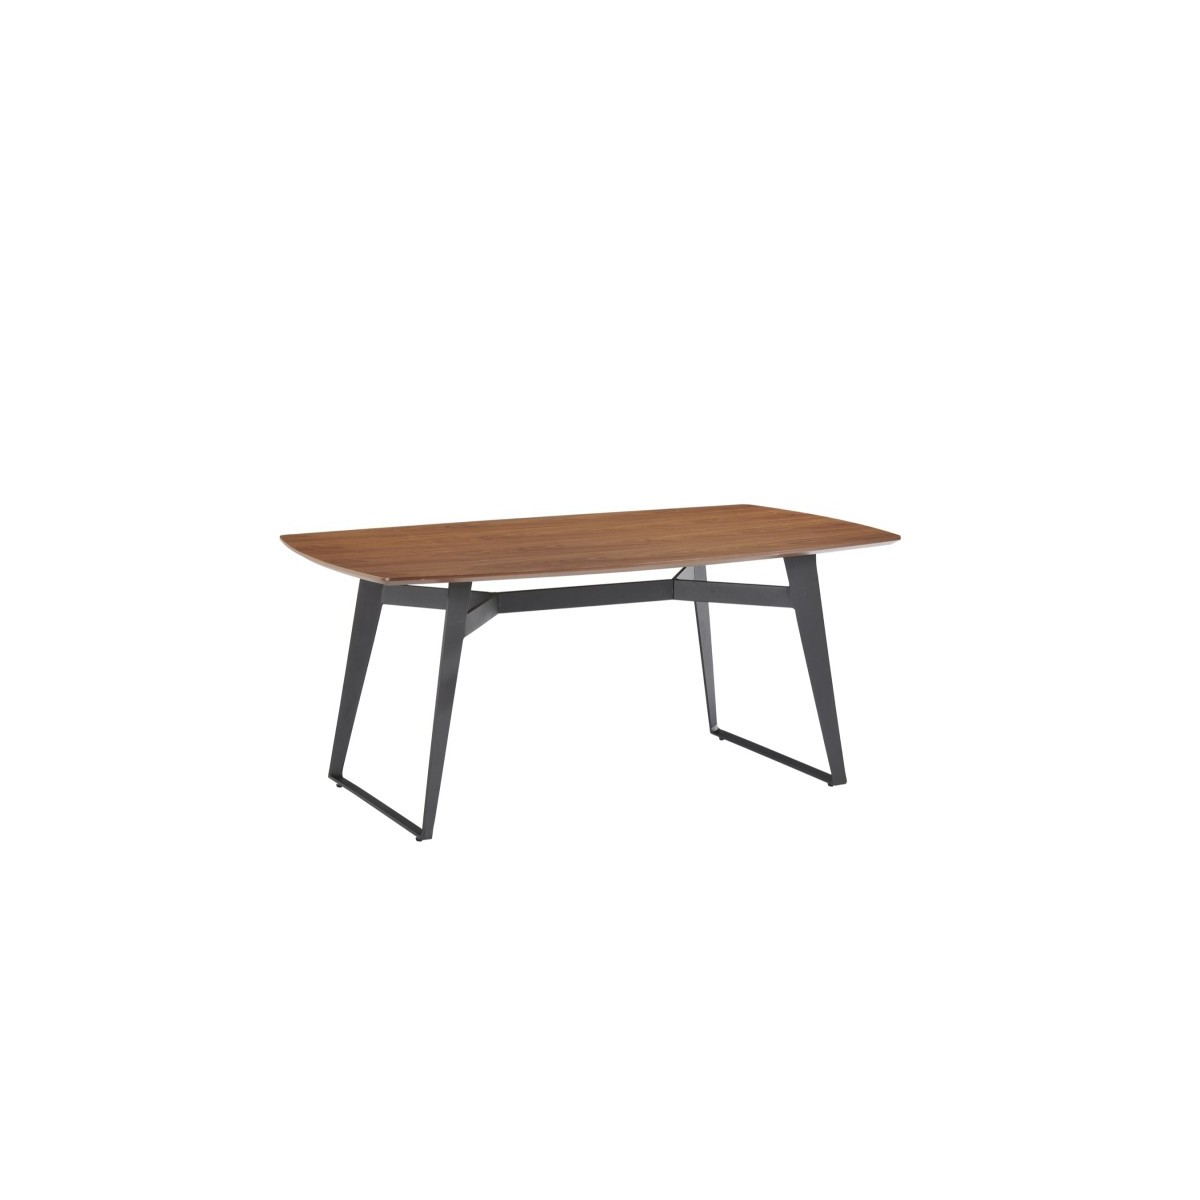 contemporary dining table and vintage mael in wood and metal 180cmx90cmx77 5cm black walnut amp story 4233